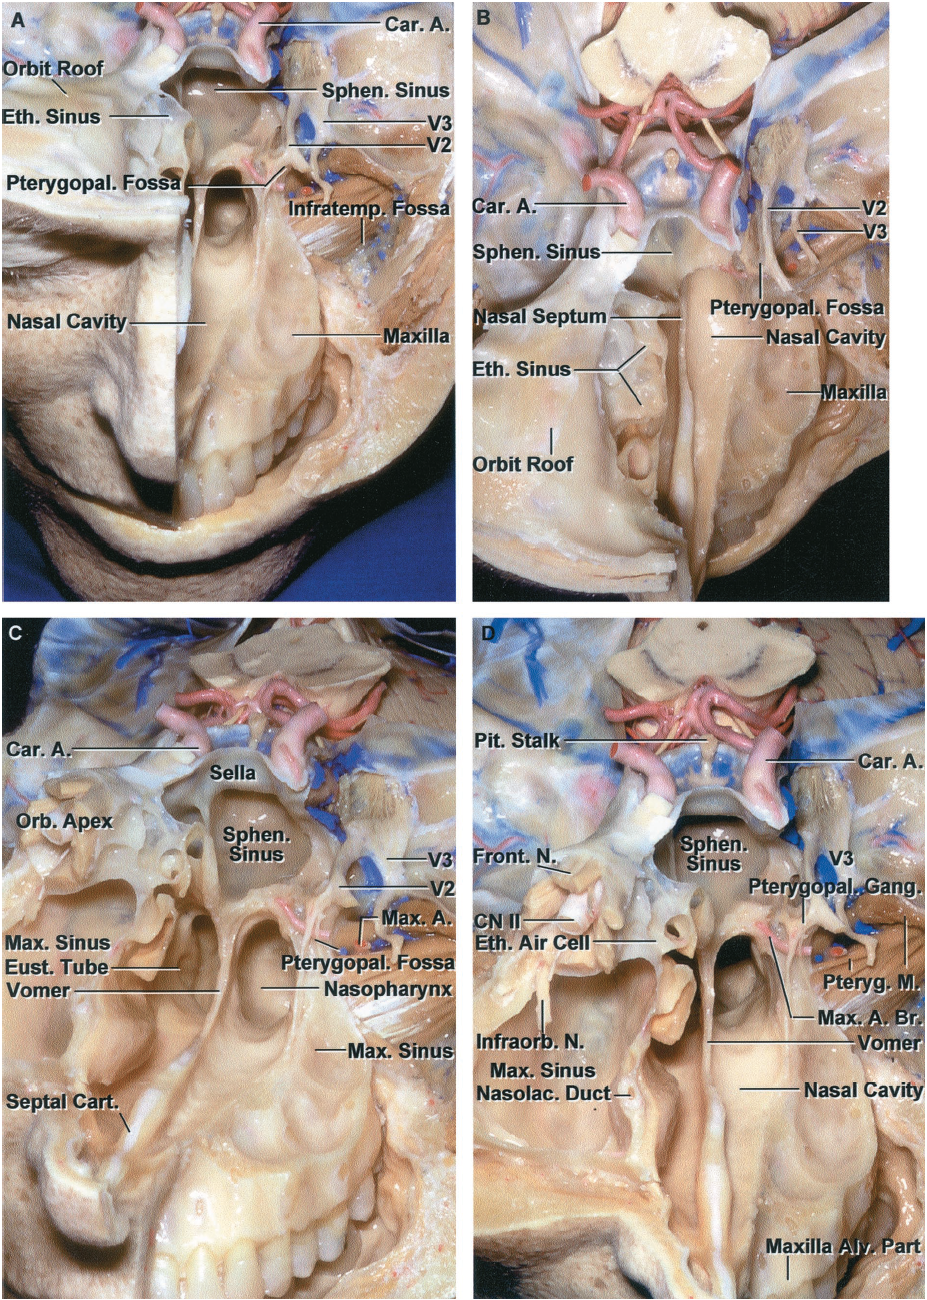 FIGURE 6.1. Anterior and middle cranial base. A, on the left side, the floor of the anterior fossa and the upper portion of the maxilla have been removed to expose the structures deep to the anterior and middle cranial fossa. The frontal, ethmoidal, and sphenoid sinuses and the nasal cavity lie below the medial part of the anterior cranial base. The orbit and maxilla are located below the lateral part of the anterior cranial base. The sphenoid sinus and sella are located in the medial part of the middle cranial base, and the infratemporal and pterygopalatine fossa are located below the lateral part of the middle cranial base. The carotid arteries pass upward on the medial part of the middle cranial base and are intimately related to the sphenoid and cavernous sinuses. The infratemporal fossa, which contains branches of the mandibular nerve, pterygoid muscles, pterygoid venous plexus, and maxillary artery, is located below the middle cranial base and greater sphenoid wing. The alveolar process of the maxilla, which encloses the roots of the upper teeth, has been preserved on the left side. The maxillary nerve enters the pterygopalatine fossa, which is located medial to the infratemporal fossa between the posterior wall of the maxilla and the pterygoid process of the sphenoid bone. B, superior view of the anterior and middle cranial base. The infratemporal fossa is located posterolateral to the maxilla. The right ethmoid air cells are exposed on the medial side of the right orbit. The nasal cavity extends upward between the ethmoidal sinuses. C, oblique anterior view. The facial structures on the right side have been removed to expose the orbital apex located above the maxillary sinus. The walls of the right maxillary sinus form the floor of the orbit, much of the lateral wall of the nasal cavity, and the anterior wall of the pterygopalatine and infratemporal fossa. On the left side, the mandibular nerve enters the infratemporal fossa. The maxillary nerve enters the pterygopalatine fossa, which is located in the lateral wall of the nasal cavity and contains the maxillary nerve, pterygopalatine ganglion, and terminal branches of the maxillary artery. D, anterior view. The orbital apex is located above the pterygopalatine fossa. The frontal branch of the ophthalmic nerve passes along the roof of the orbit, and the infraorbital branch of the maxillary nerve courses in the floor of the orbit. The posterior ethmoid air cells are located medial to the orbital apex. The vomer forms the posterior part of the nasal septum and attaches to the maxilla and palatine bones below and to the body of the sphenoid bone above. The sphenoid sinus is located in the middle cranial base below the sella turcica. The upper brainstem is seen in the posterior part of the exposure. A., artery; Alv., alveolar; Br., branch; Car., carotid; Cart., cartilage; CN, cranial nerve; Eth., ethmoid; Eust., eustachian; Foss., fossa; Front., frontal; Gang., ganglion; Infraorb., infraorbital; Infratemp., infratemporal; M., muscle; Max., maxillary; N., nerve; Nasolac., nasolacrimal; Orb., orbital; Pit., pituitary; Pteryg., pterygoid; Pterygopal., pterygopalatine; Sphen., sphenoid.